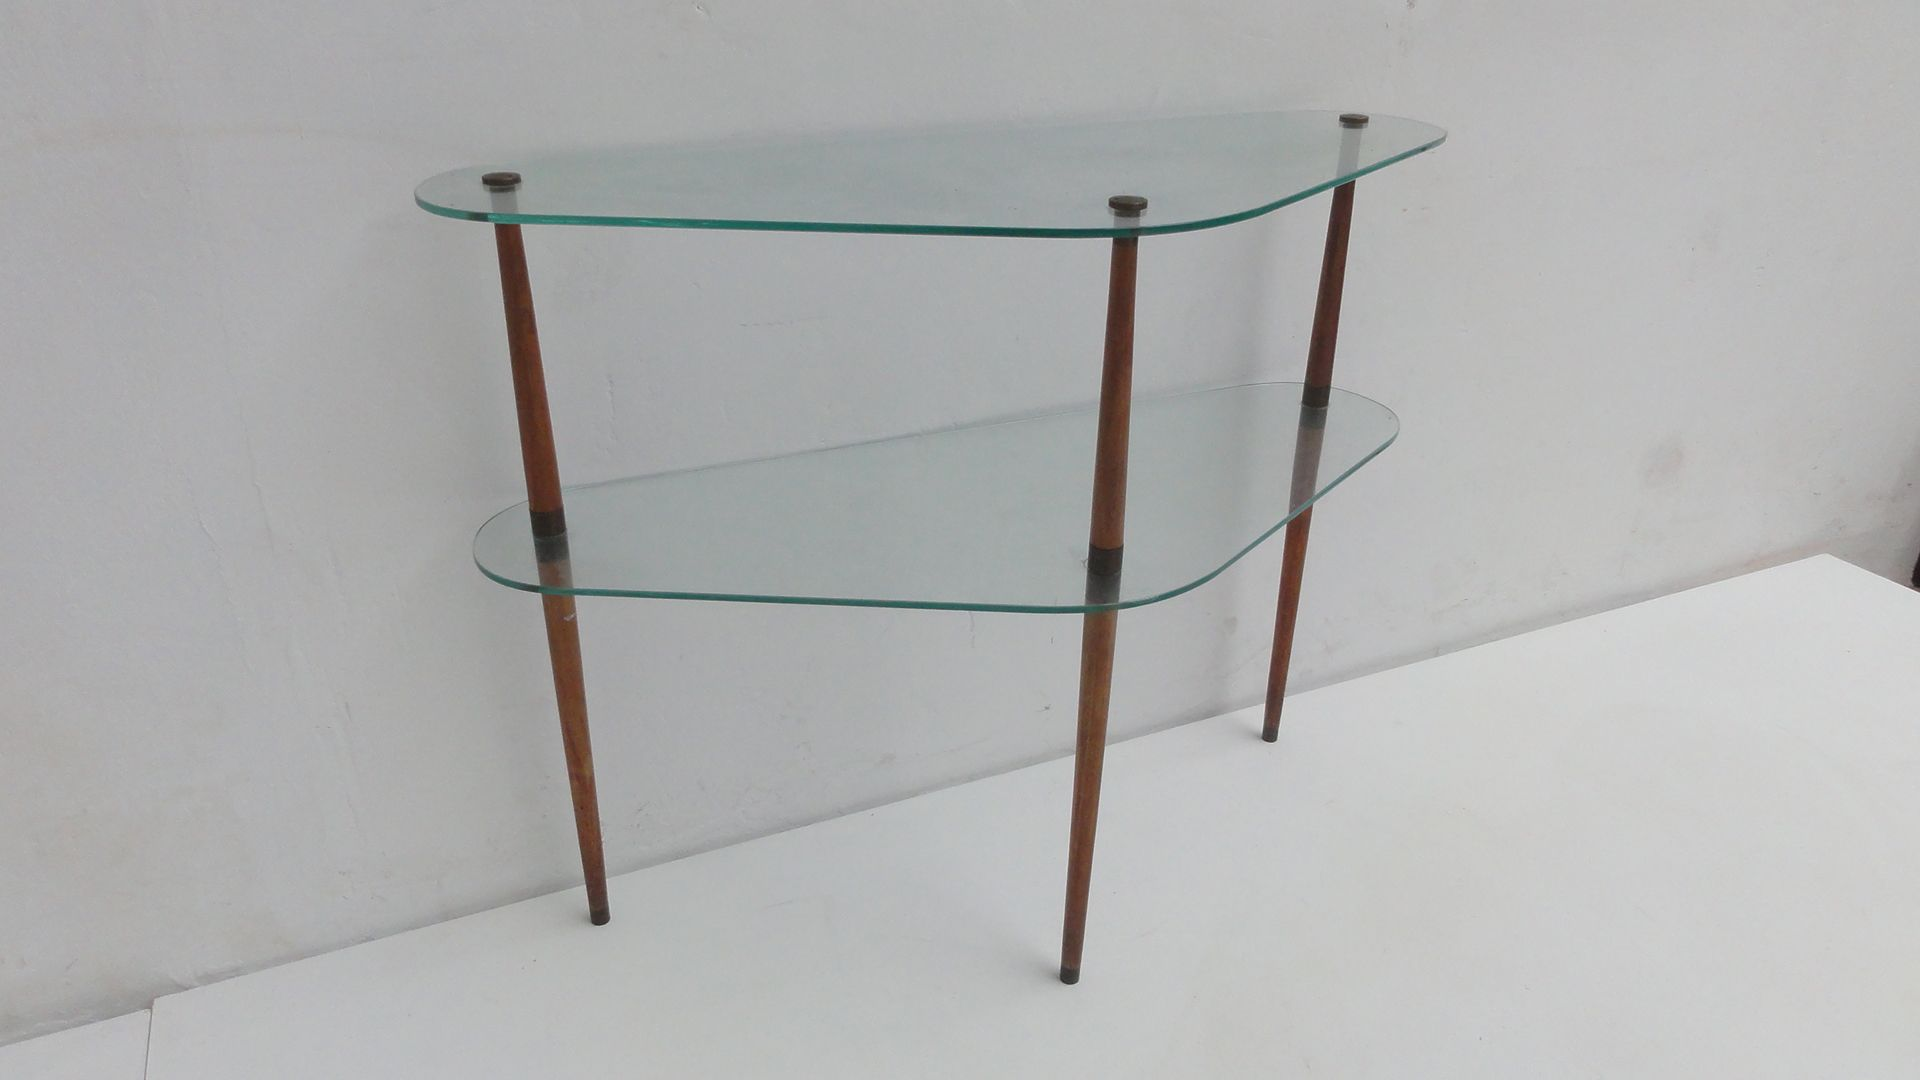 50s retro console table - photo #43